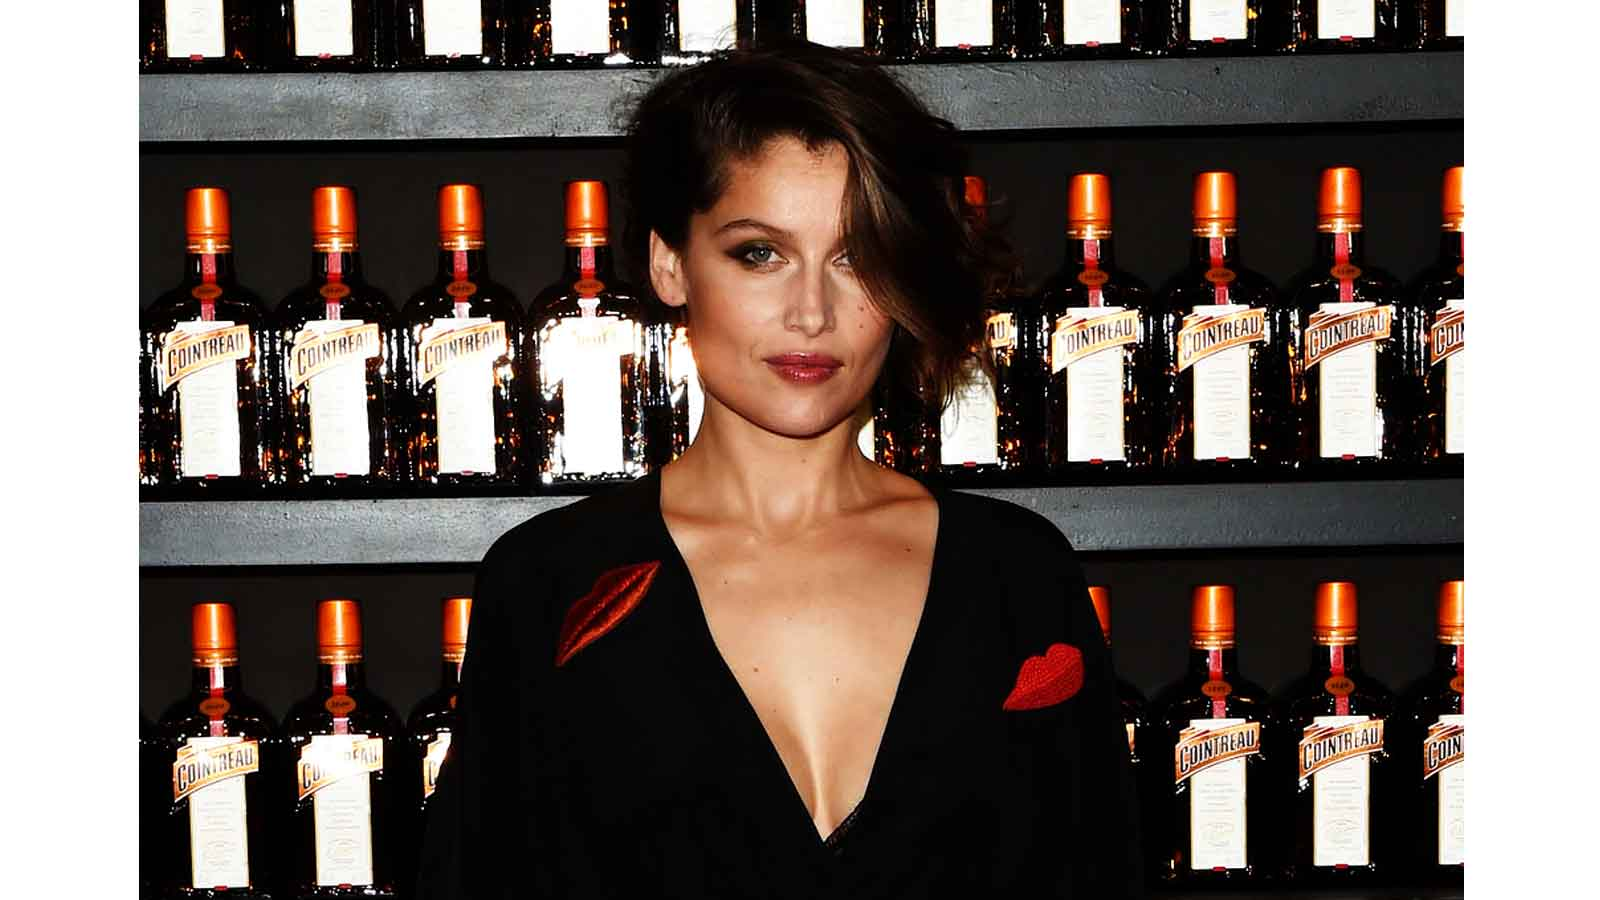 Laetitia Casta and La Maison Cointreau launch the Cointreau Creative Crew